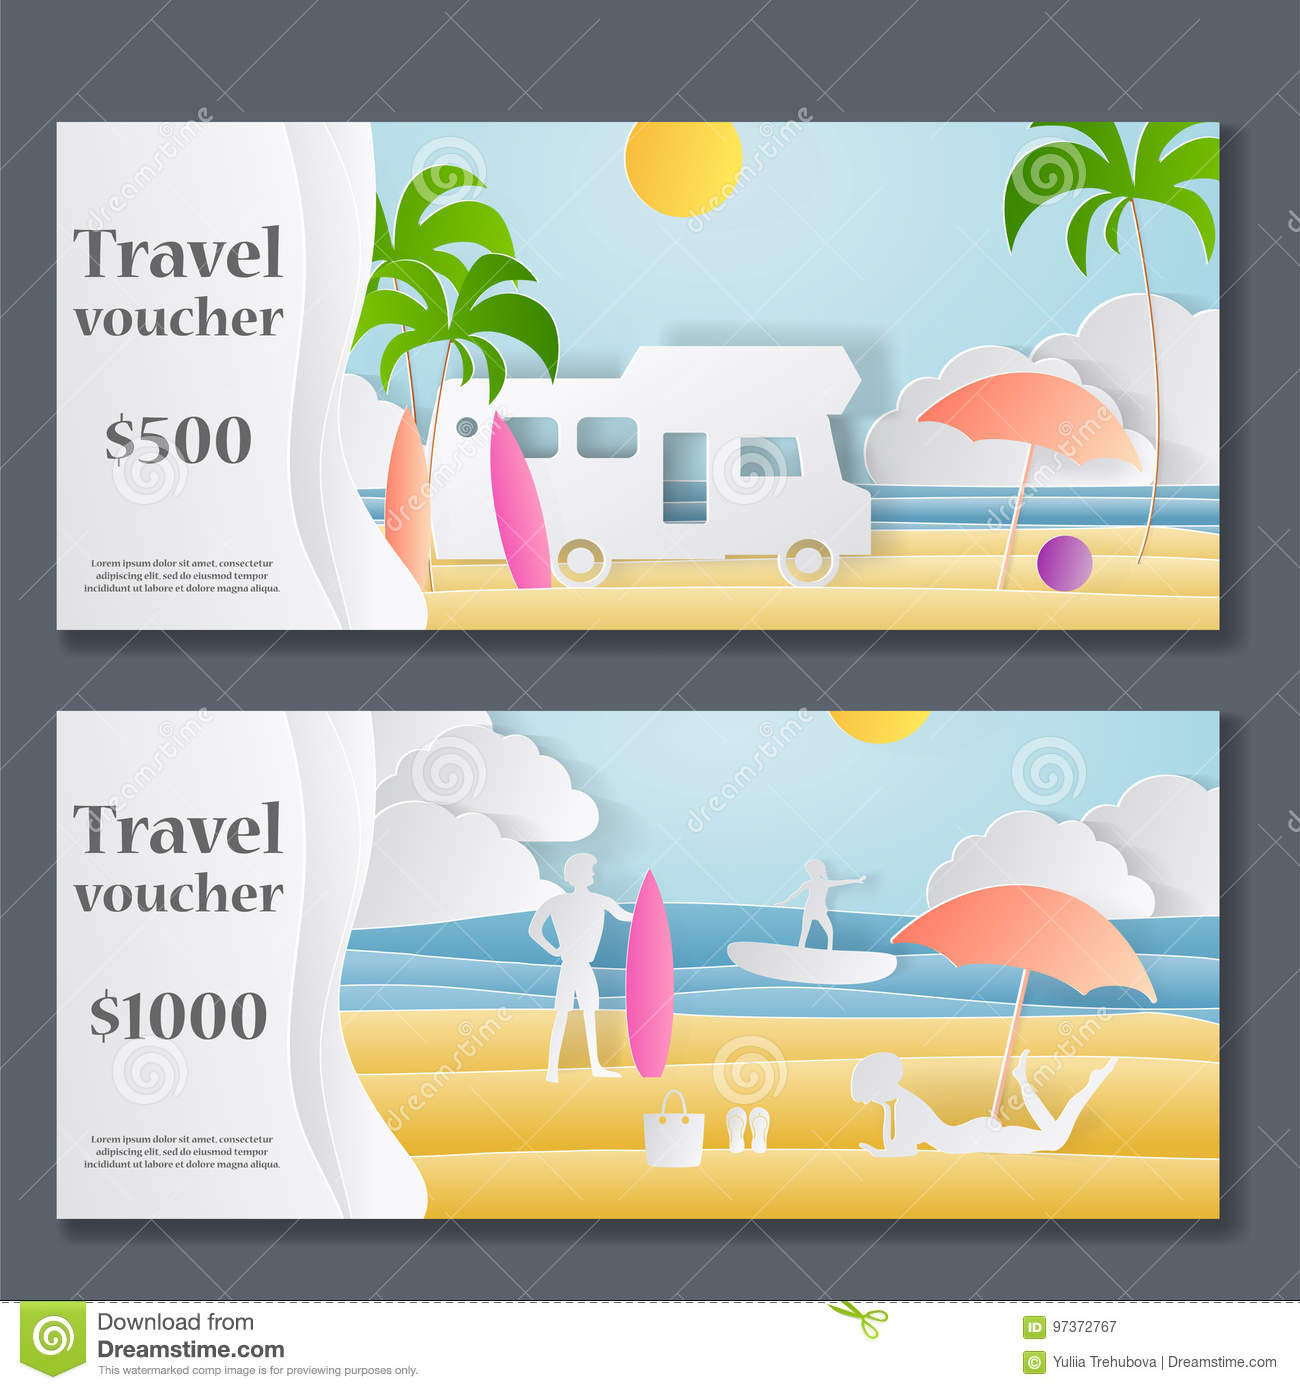 Gift voucher template paper crafted cutout world concept of royalty free vector download gift voucher template yadclub Choice Image